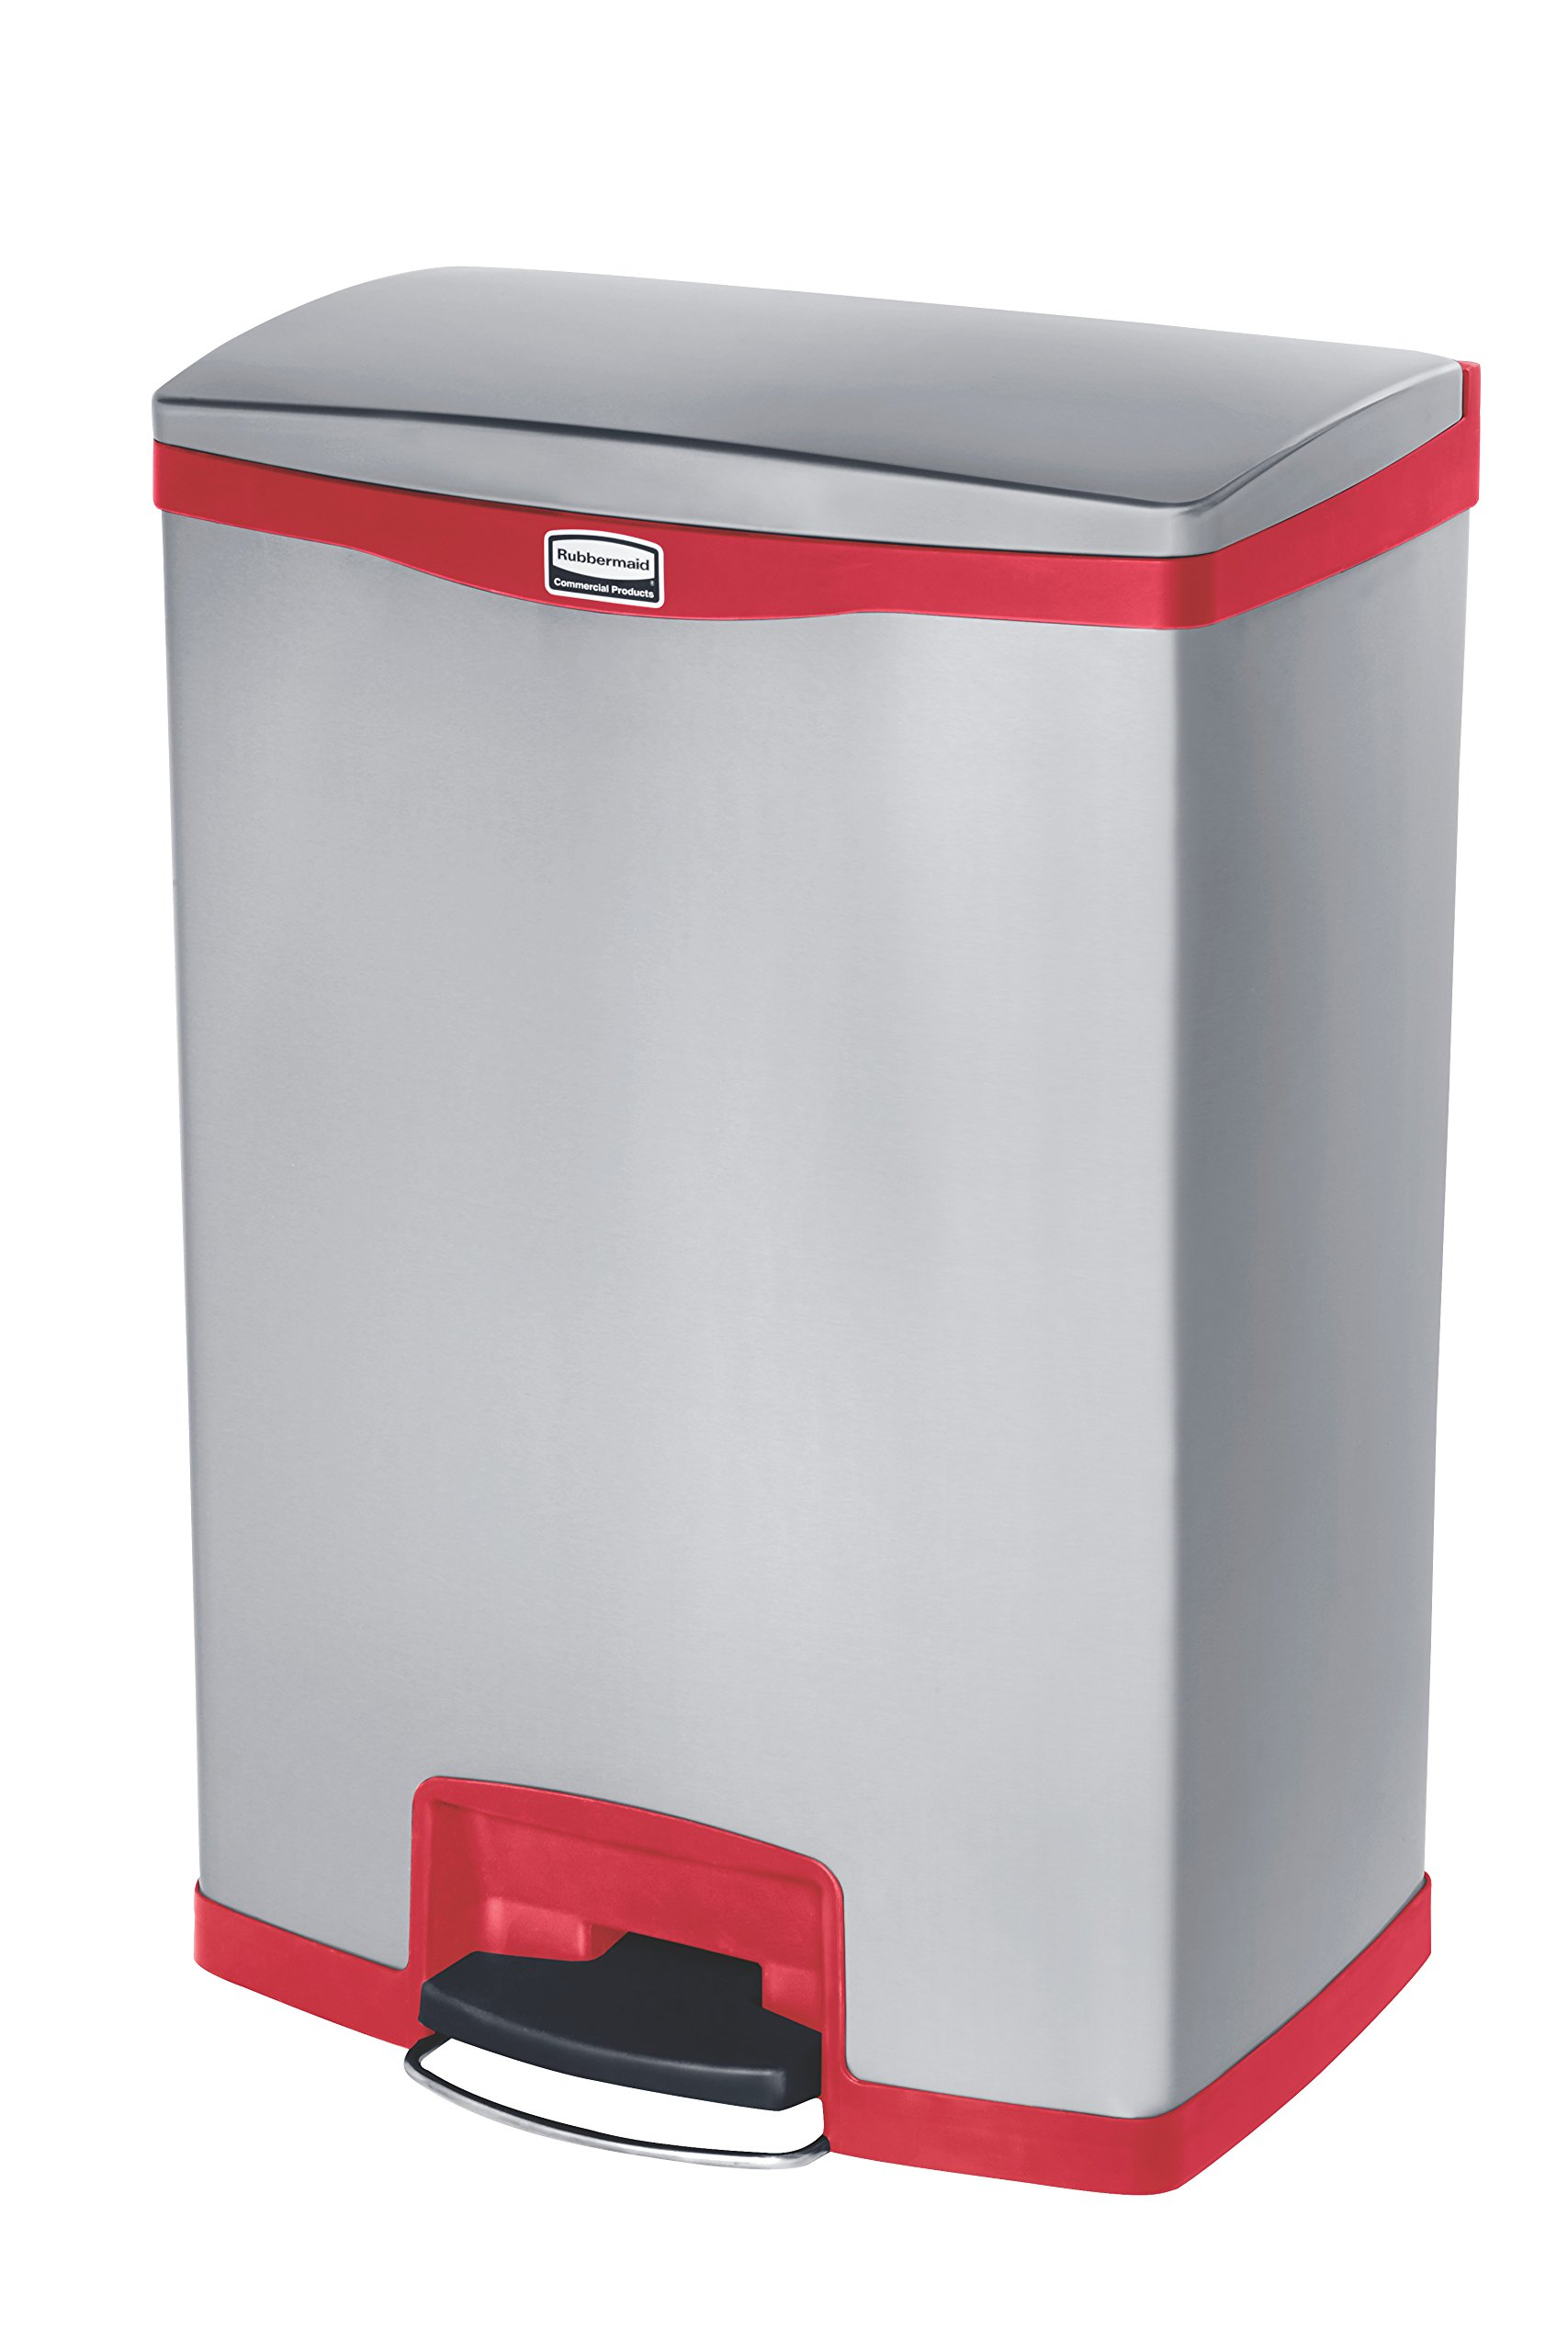 Rubbermaid Commercial Slim Jim Stainless Steel Front Step-On Wastebasket, 24-gallon, Red (1901988) by Rubbermaid Commercial Products (Image #1)